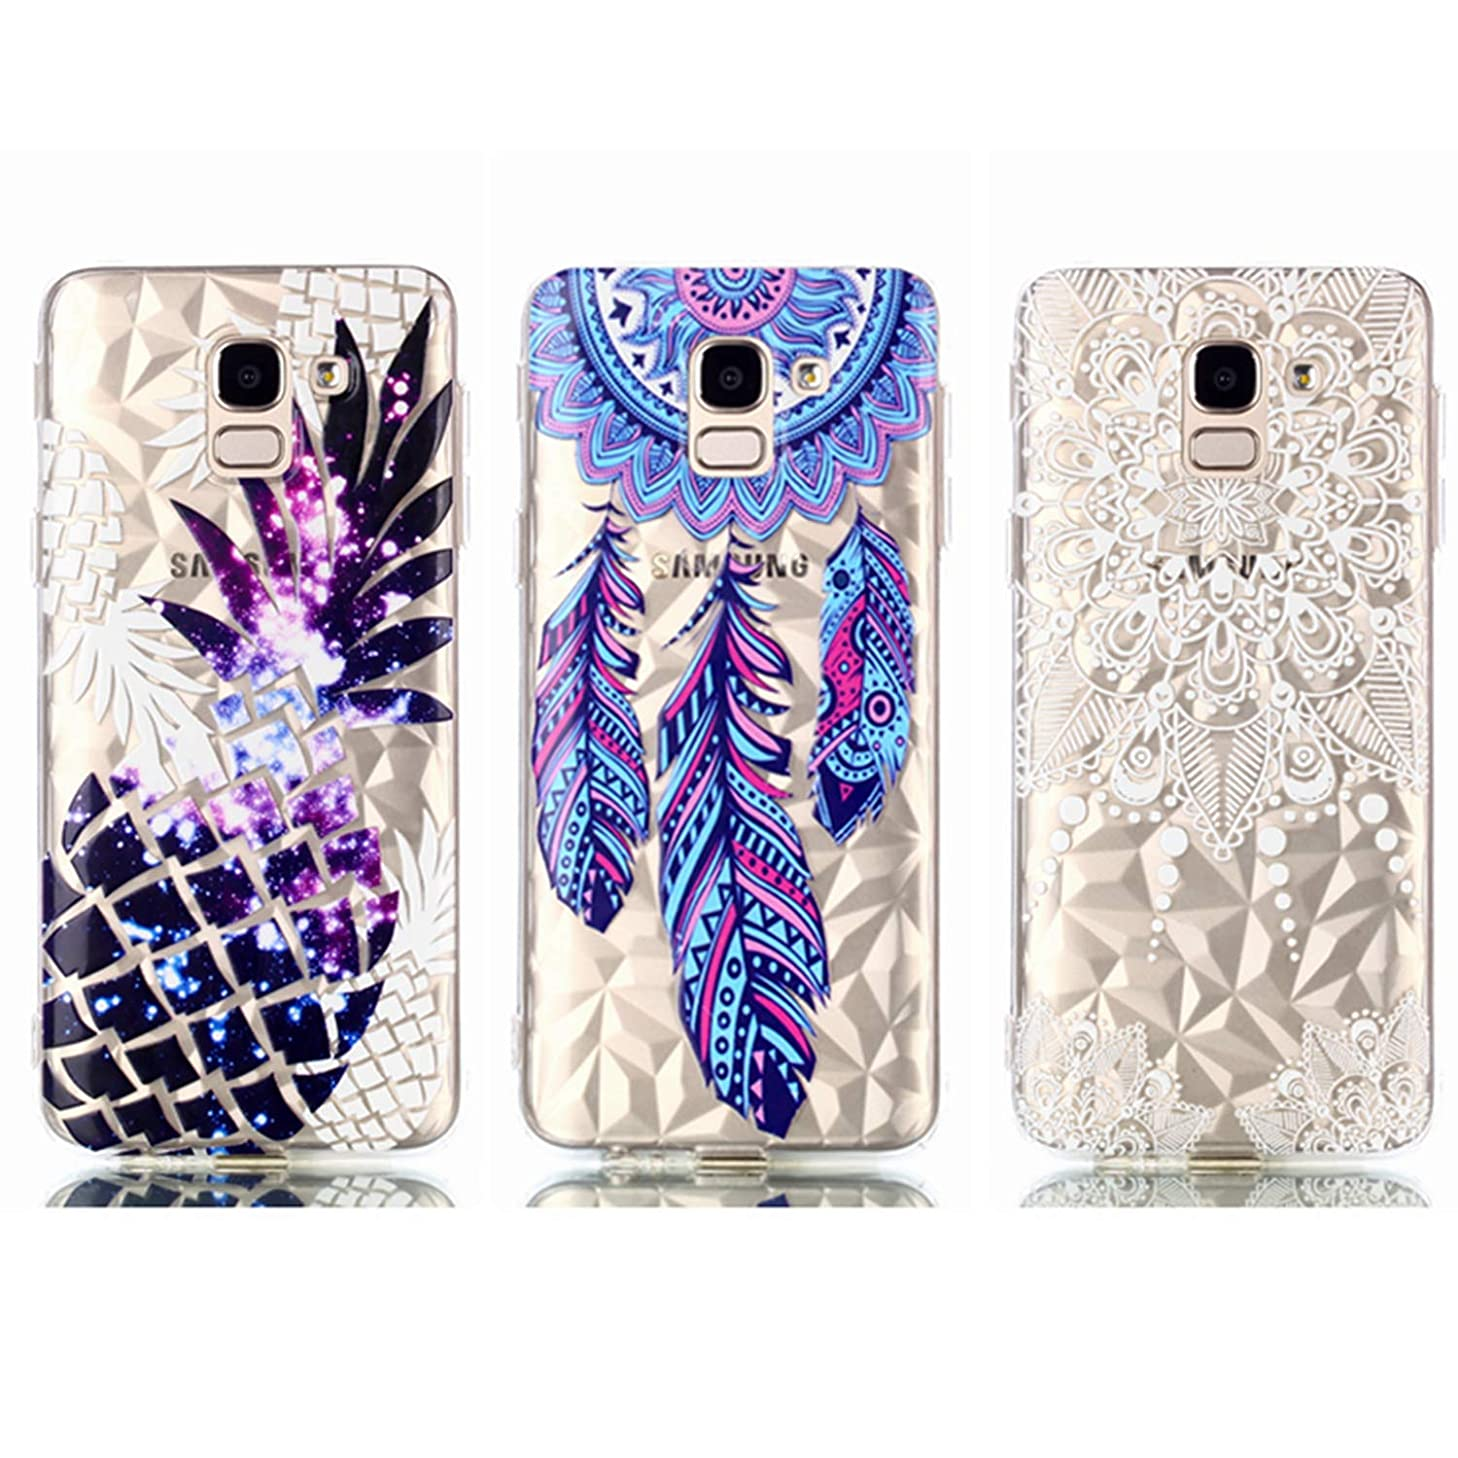 Galaxy J6 2018 Case - 3 Pcs AIIYG DS Soft TPU Rubber Skin Bumper Case Transparent Crystal Clear Cute Colorful Print Patterns Ultra Thin Slim Protective Cover for Samsung Galaxy J6 2018 Dream Catcher